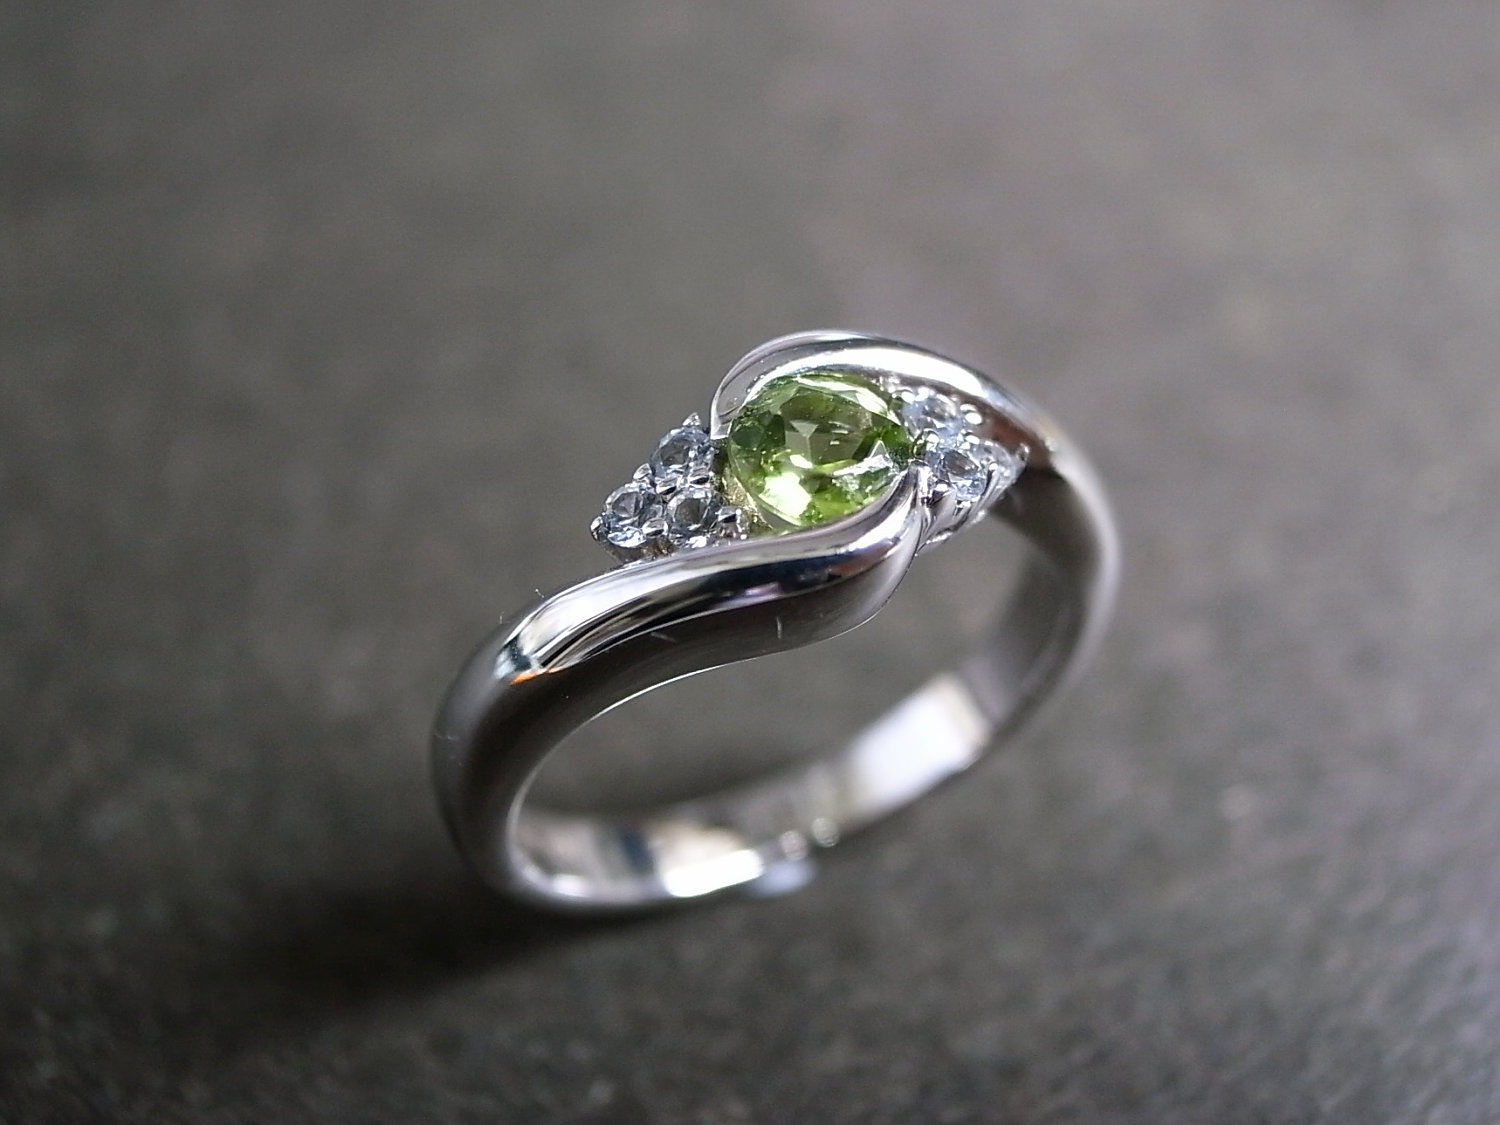 Wedding Ring With Green Shire In 14k White Gold On Luulla